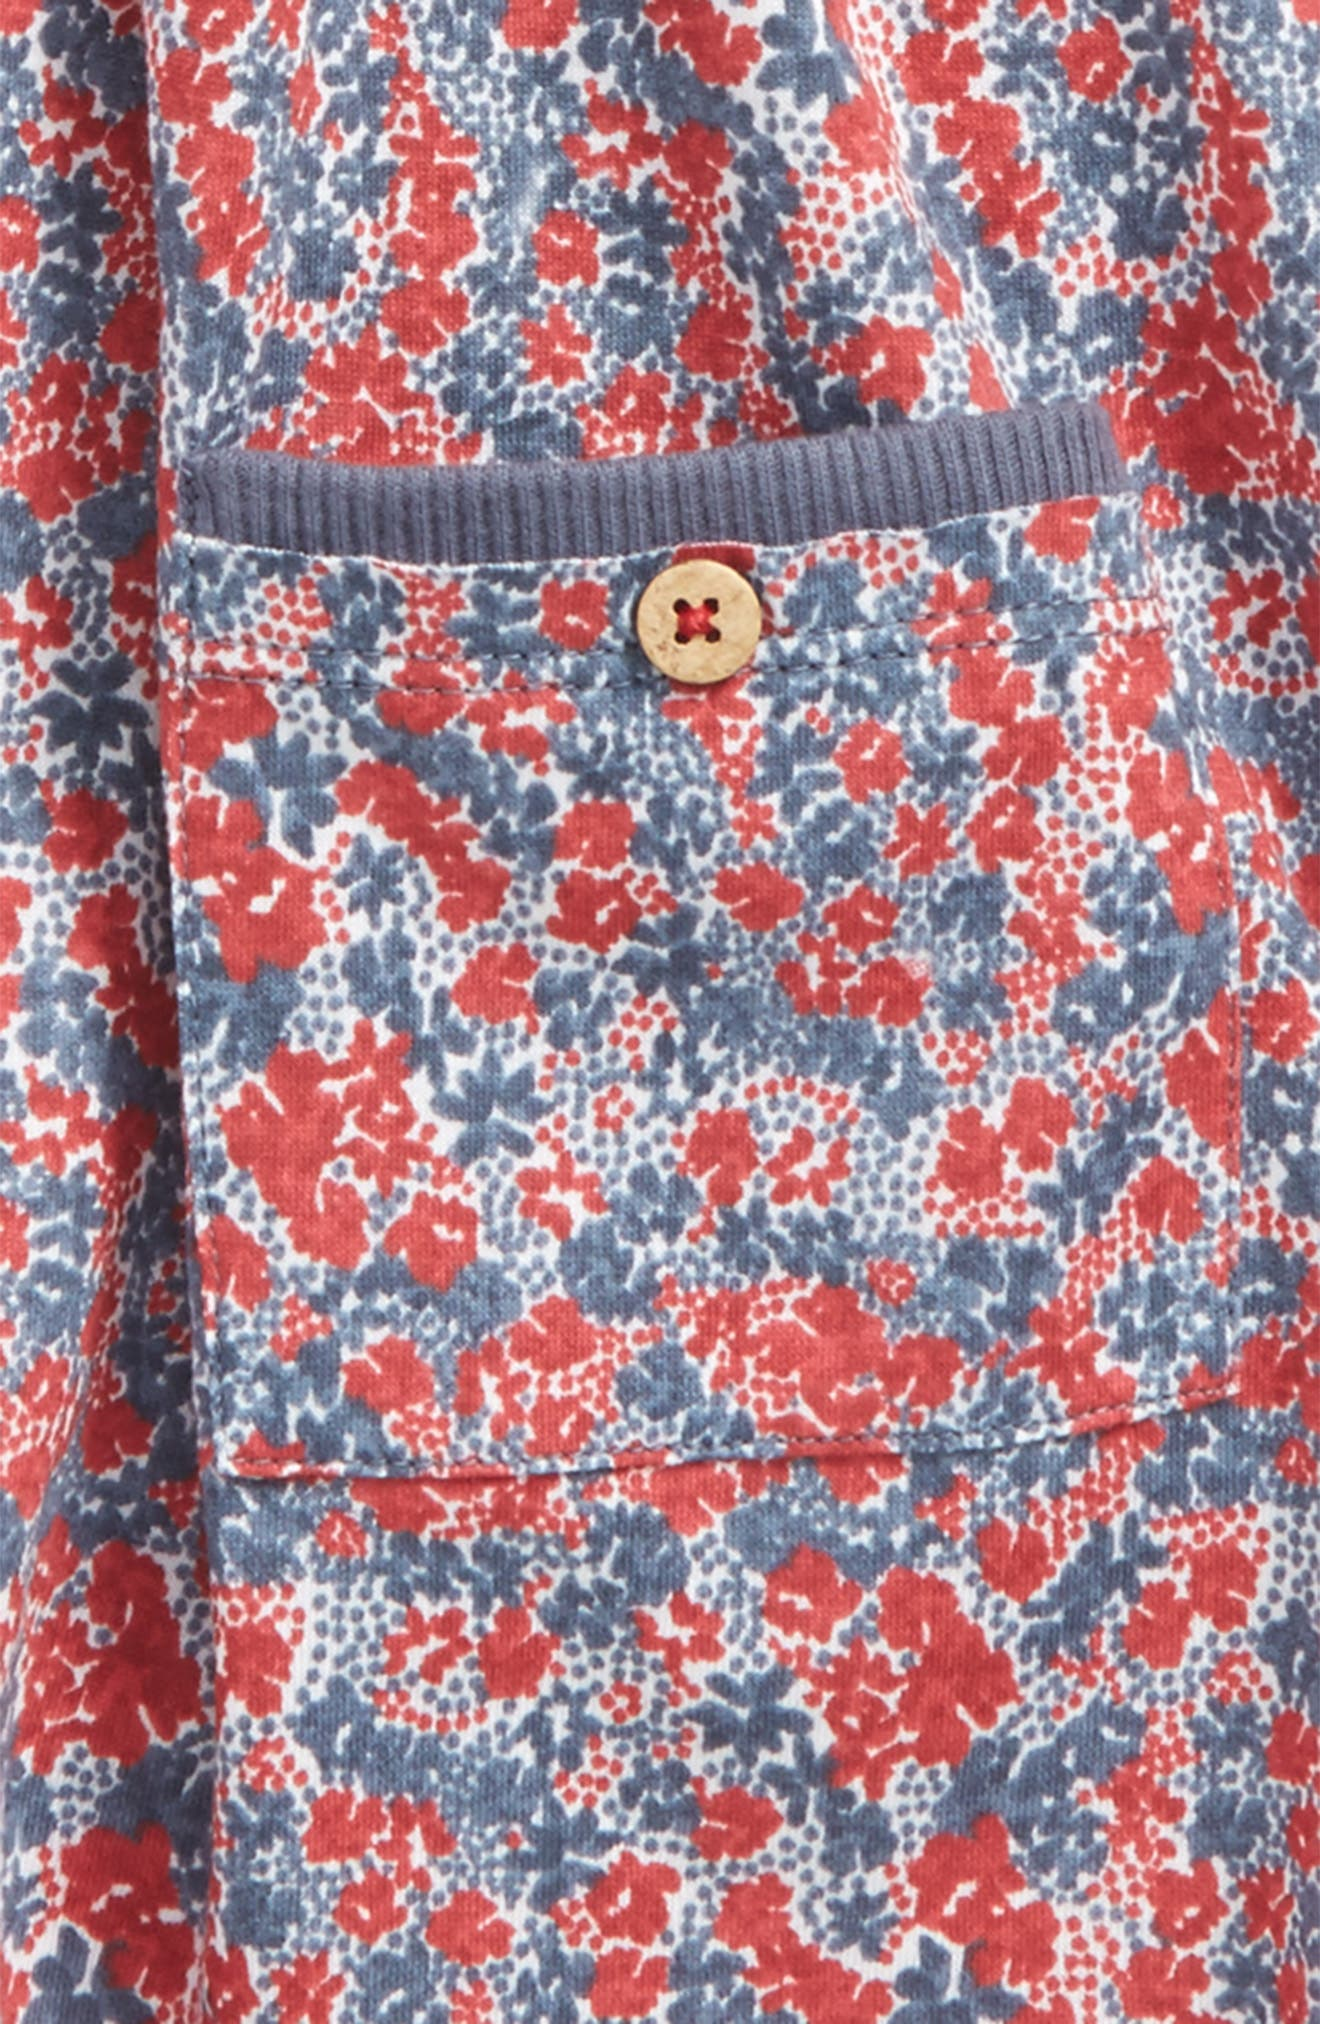 Ditsy Floral Tee,                             Alternate thumbnail 2, color,                             600